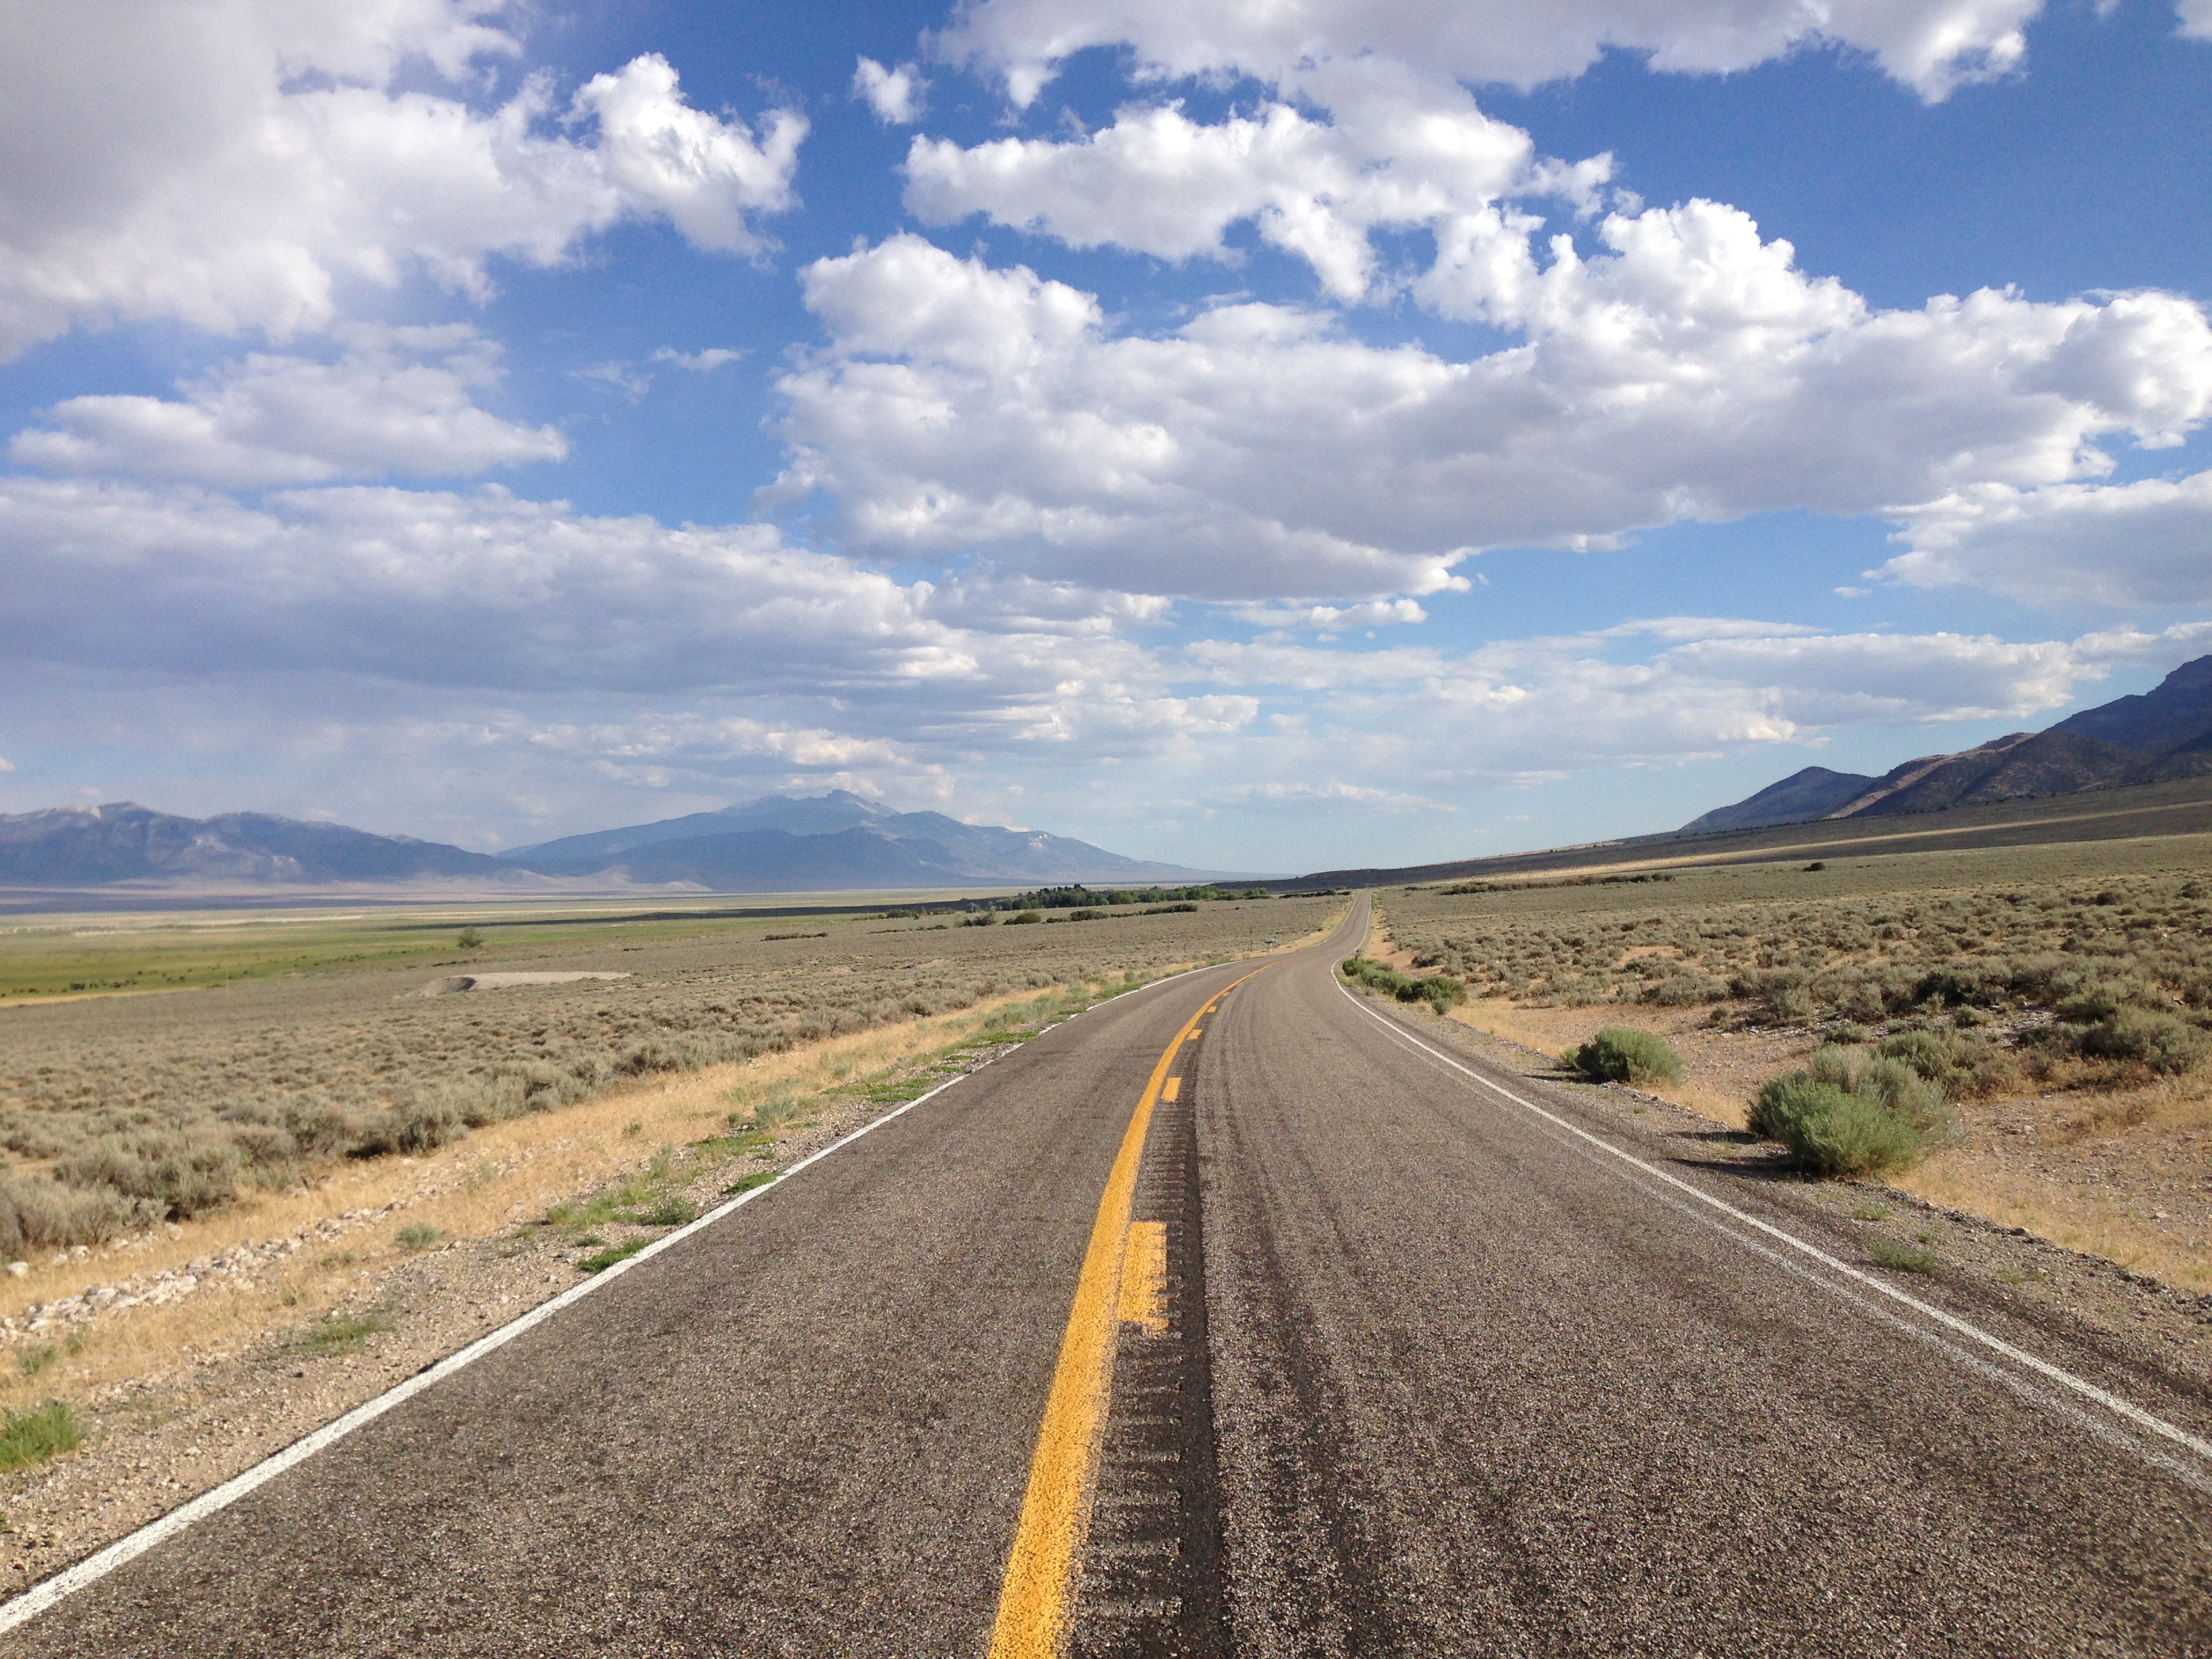 File:2014-08-09 17 07 07 View south along Nevada State ...